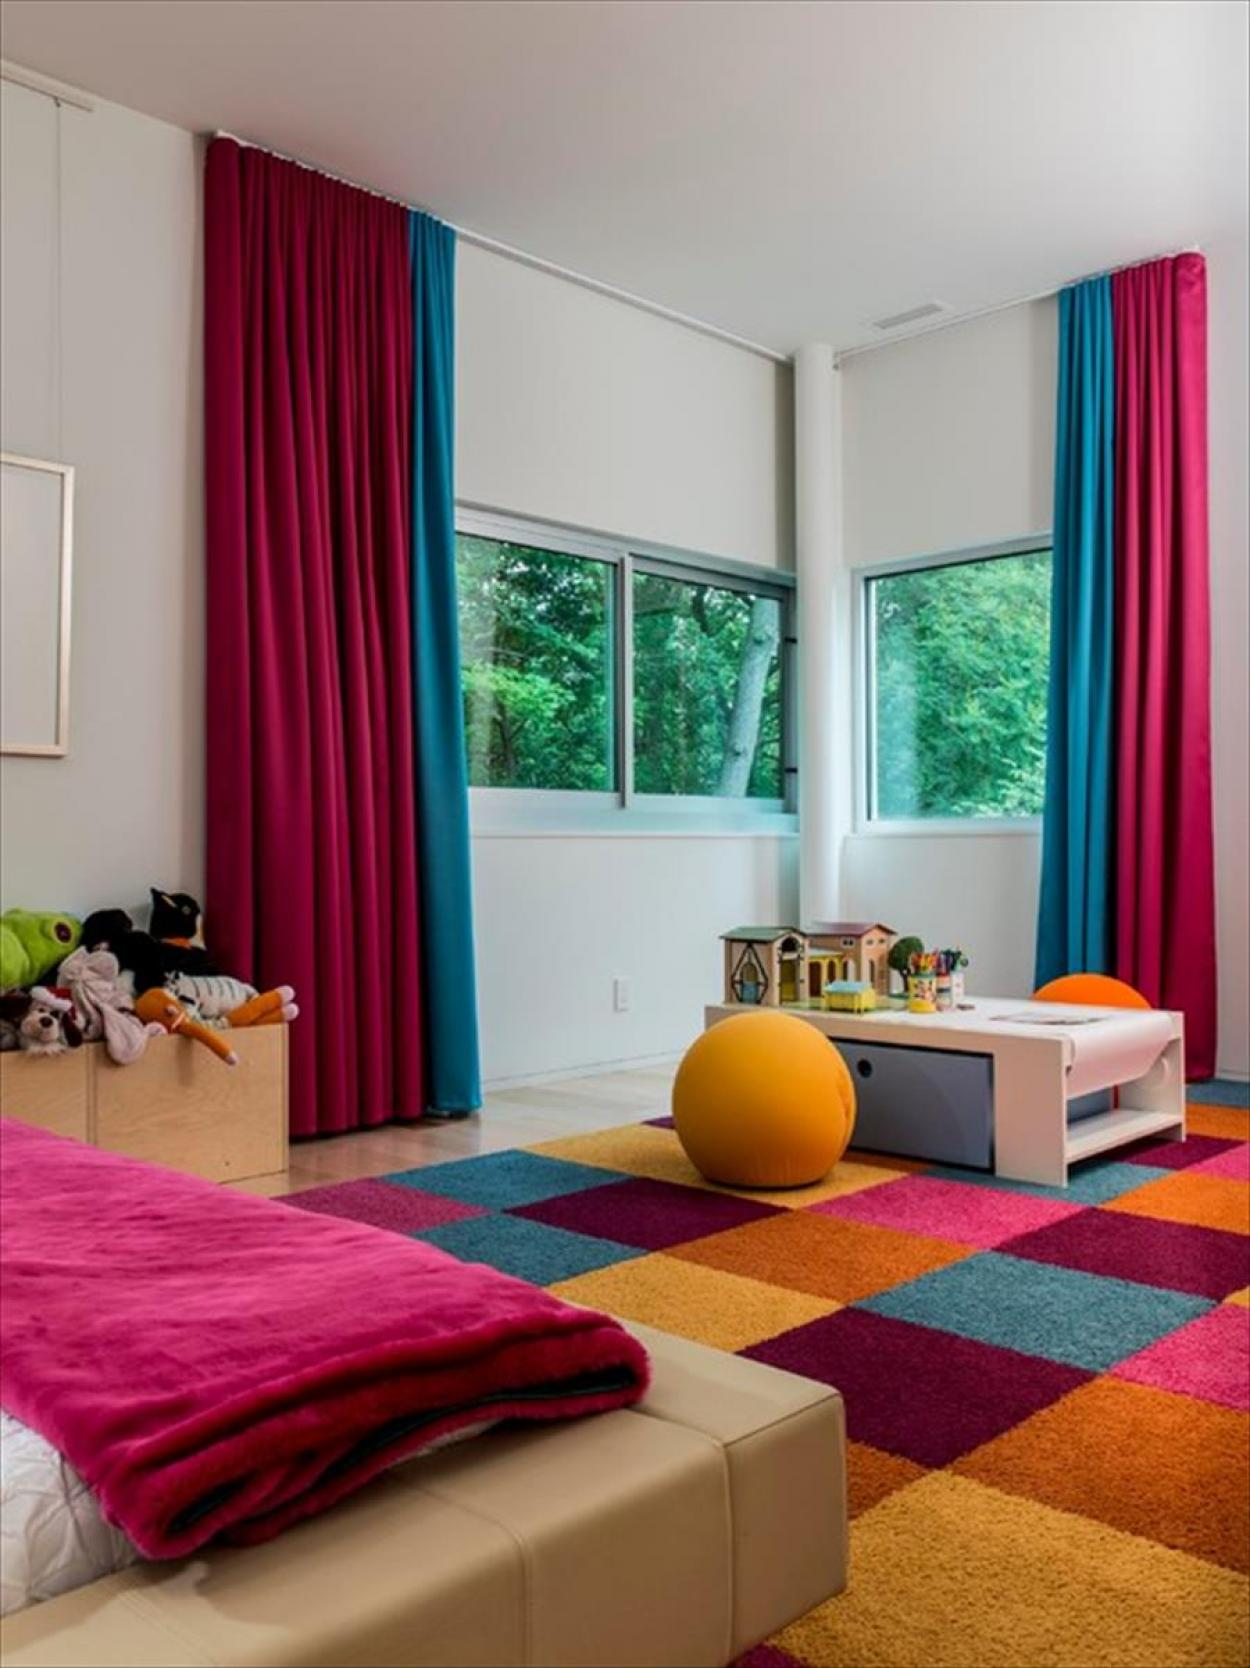 charming-interior-design-colors-theme-with-blue-and-red-curtain-for-modern-colors-interior-design